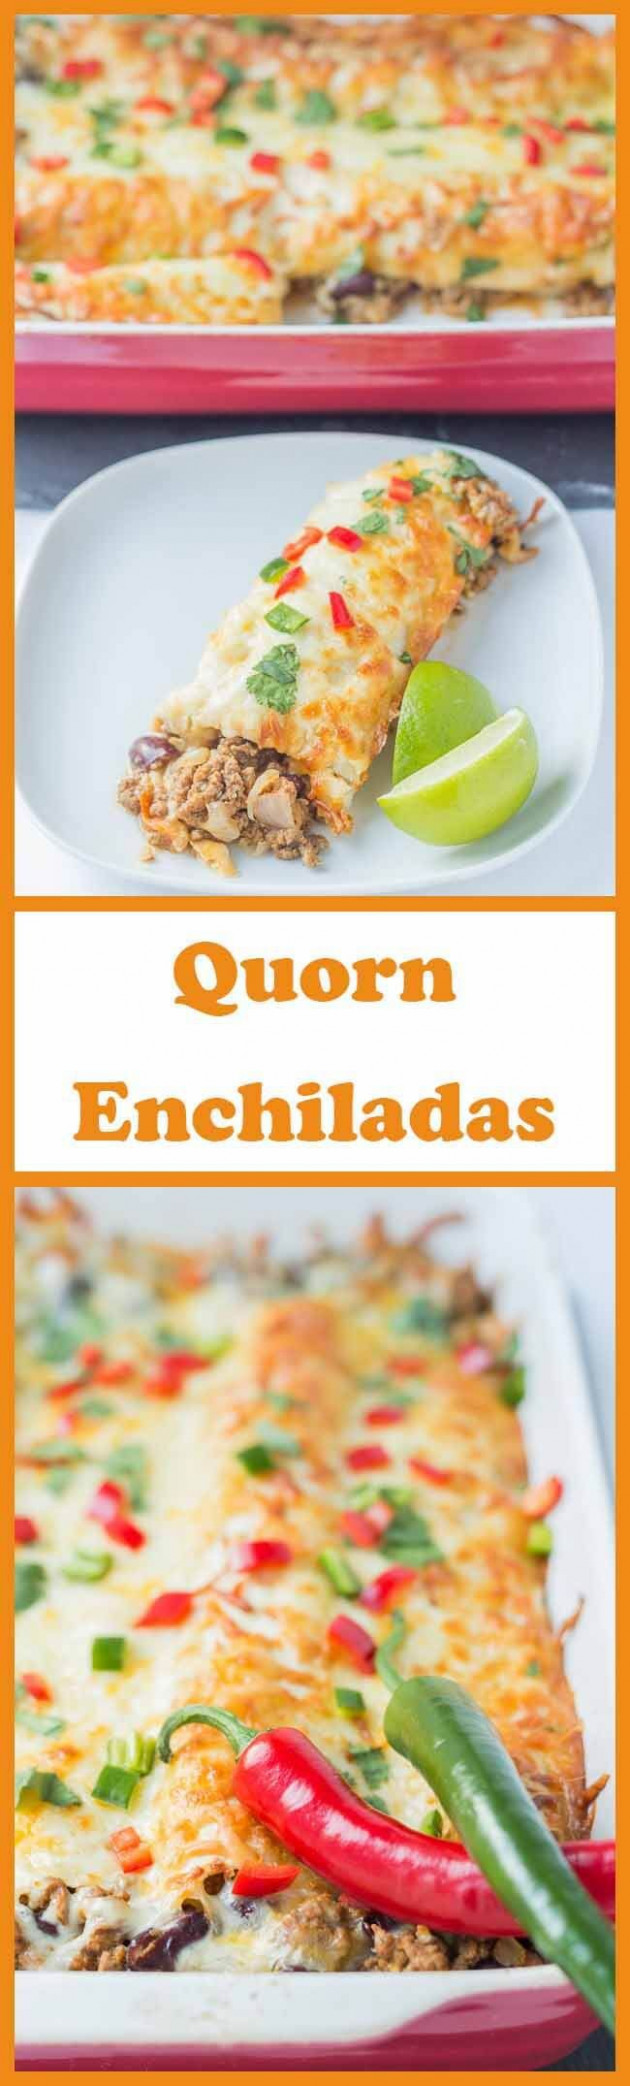 100+ Quorn Recipes on Pinterest | Quorn, Quorn mince and ...